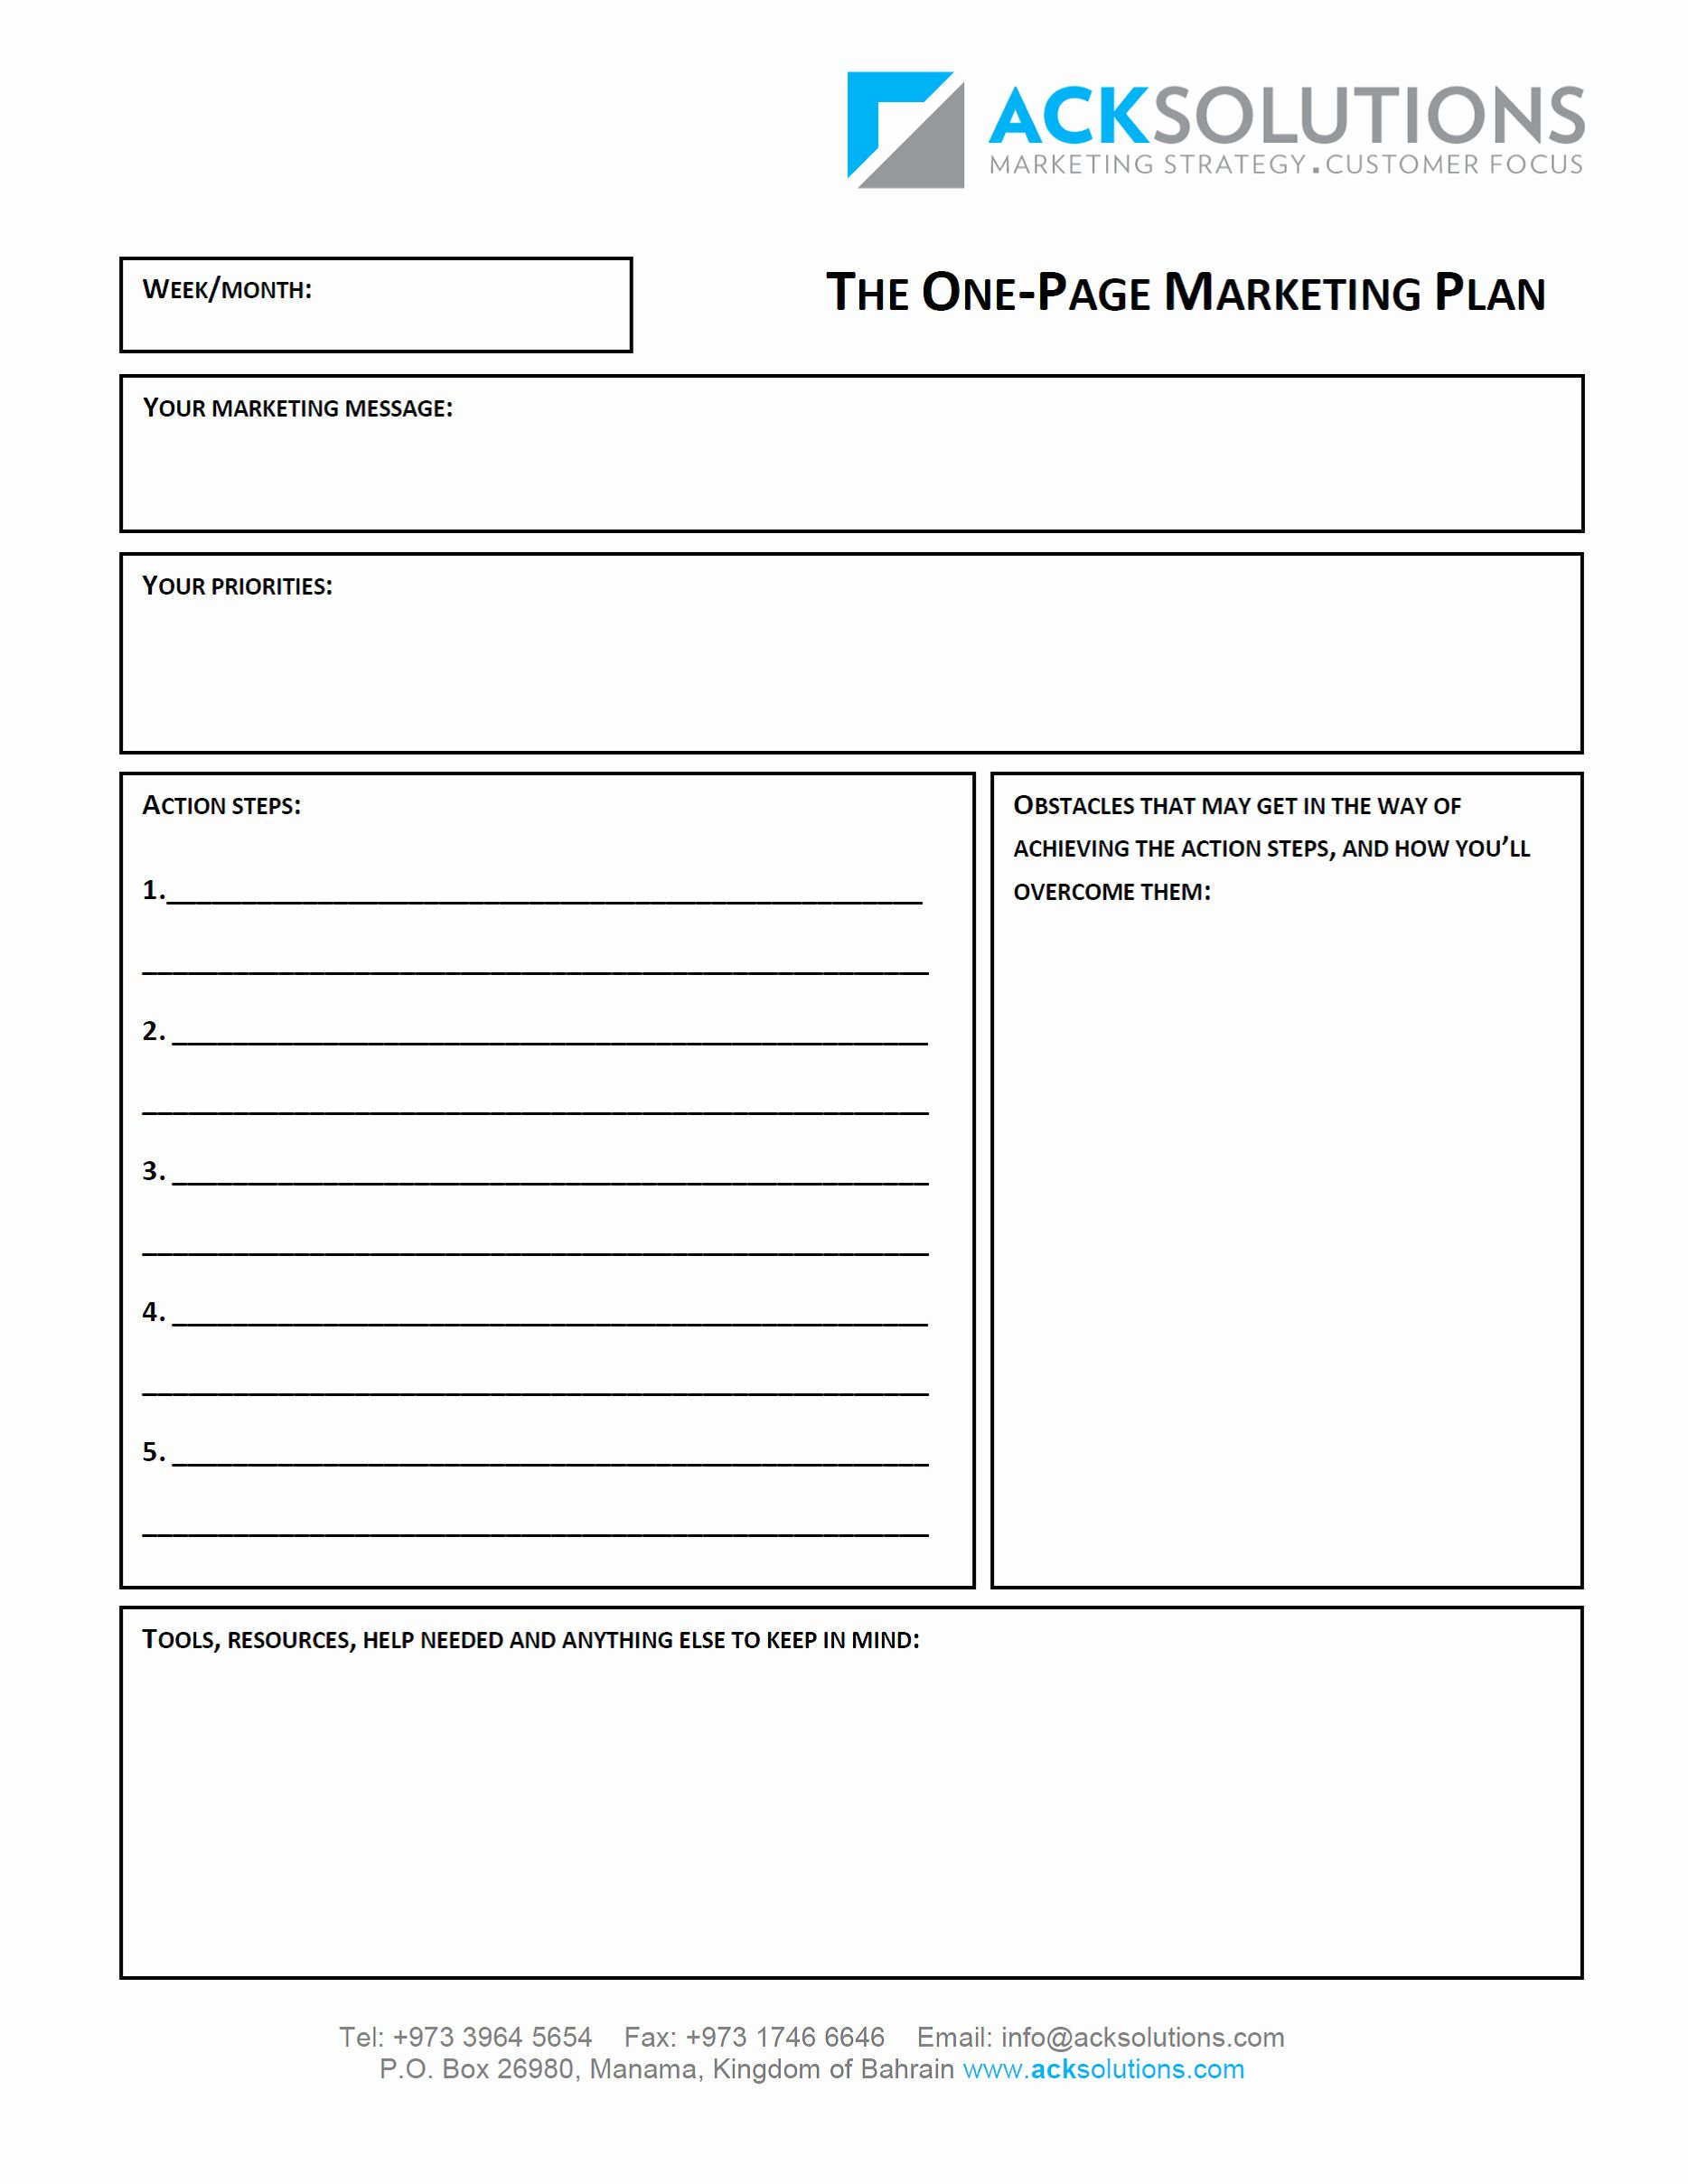 Business Plan Template For Kids Lovely S Business Plan Worksheet Template Colori Marketing Plan Template Business Plan Template Word Business Plan Template Pdf Growthink business plan template free